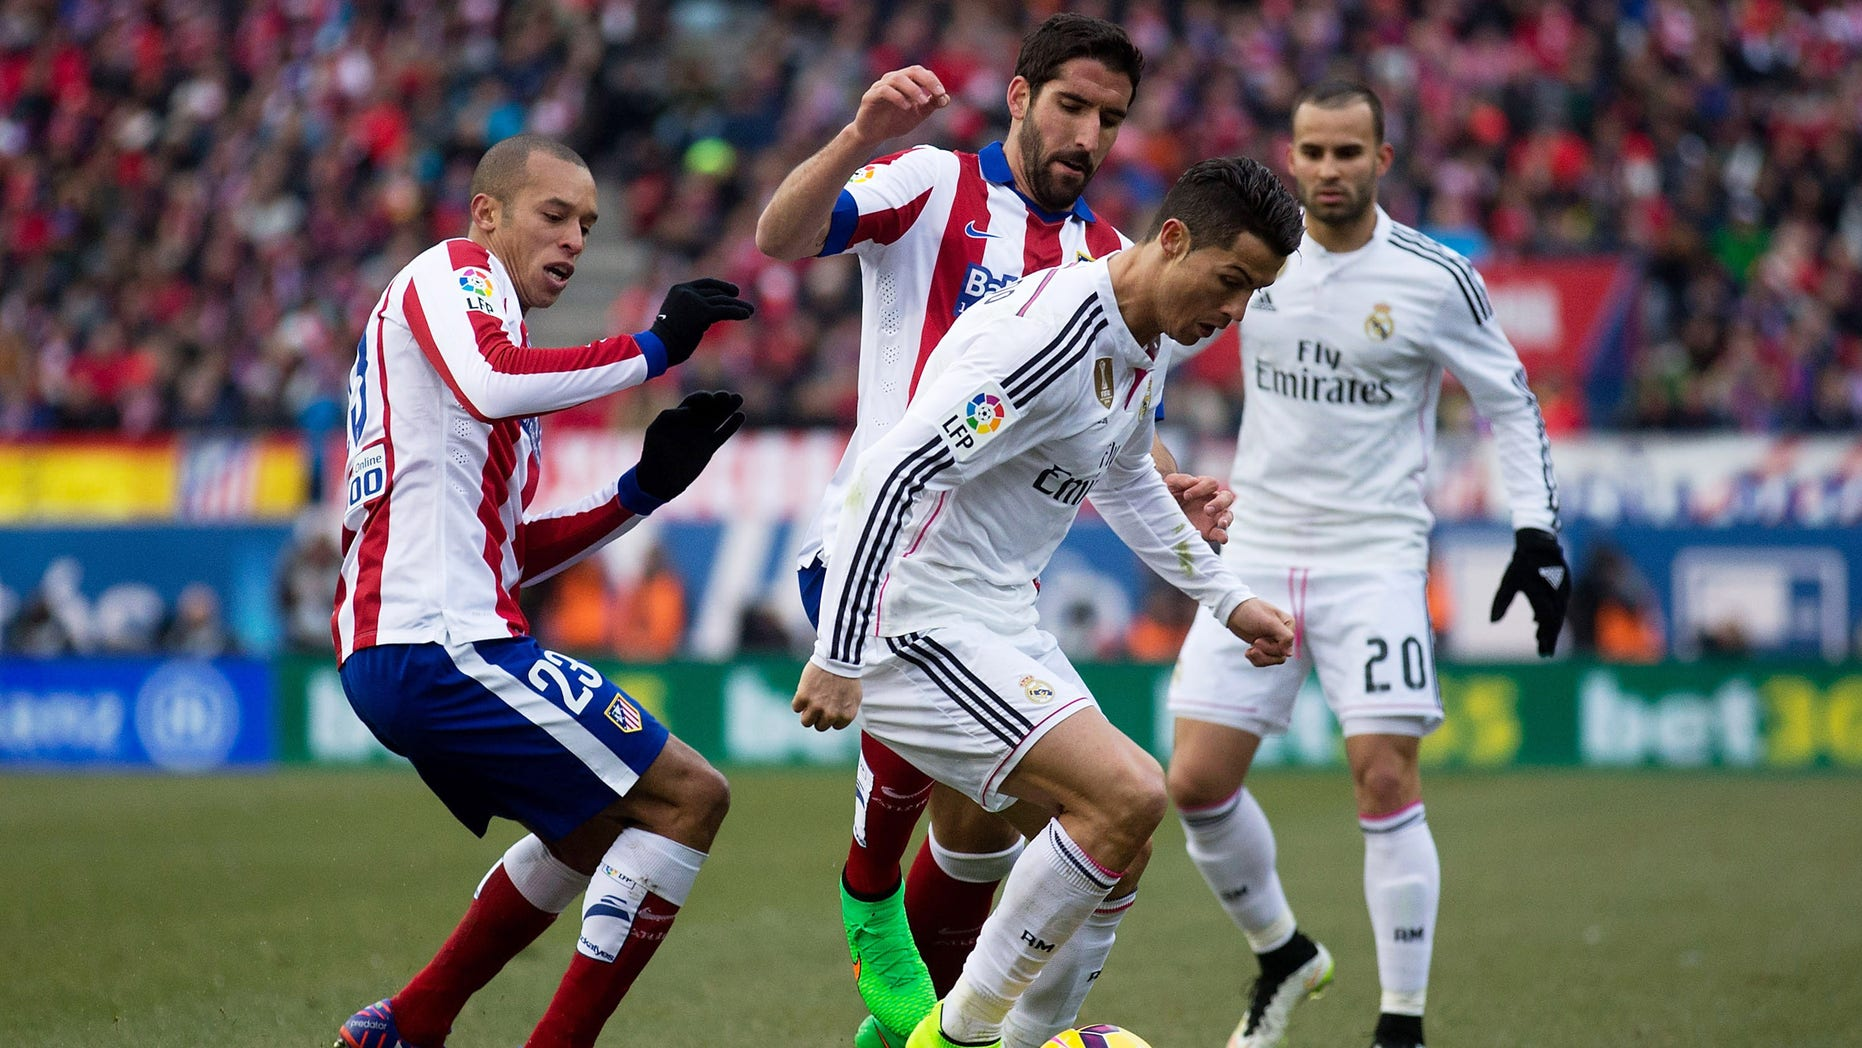 MADRID, SPAIN - FEBRUARY 07: Cristiano Ronaldo (R) of Real Madrid CF competes for the ball with Raul Garcia (2ndL) of Atletico de Madrid and his teammate Joao Miranda (L) during the La Liga match between Club Atletico de Madrid and Real Madrid CF at Vicente Calderon Stadium on February 7, 2015 in Madrid, Spain.  (Photo by Gonzalo Arroyo Moreno/Getty Images)